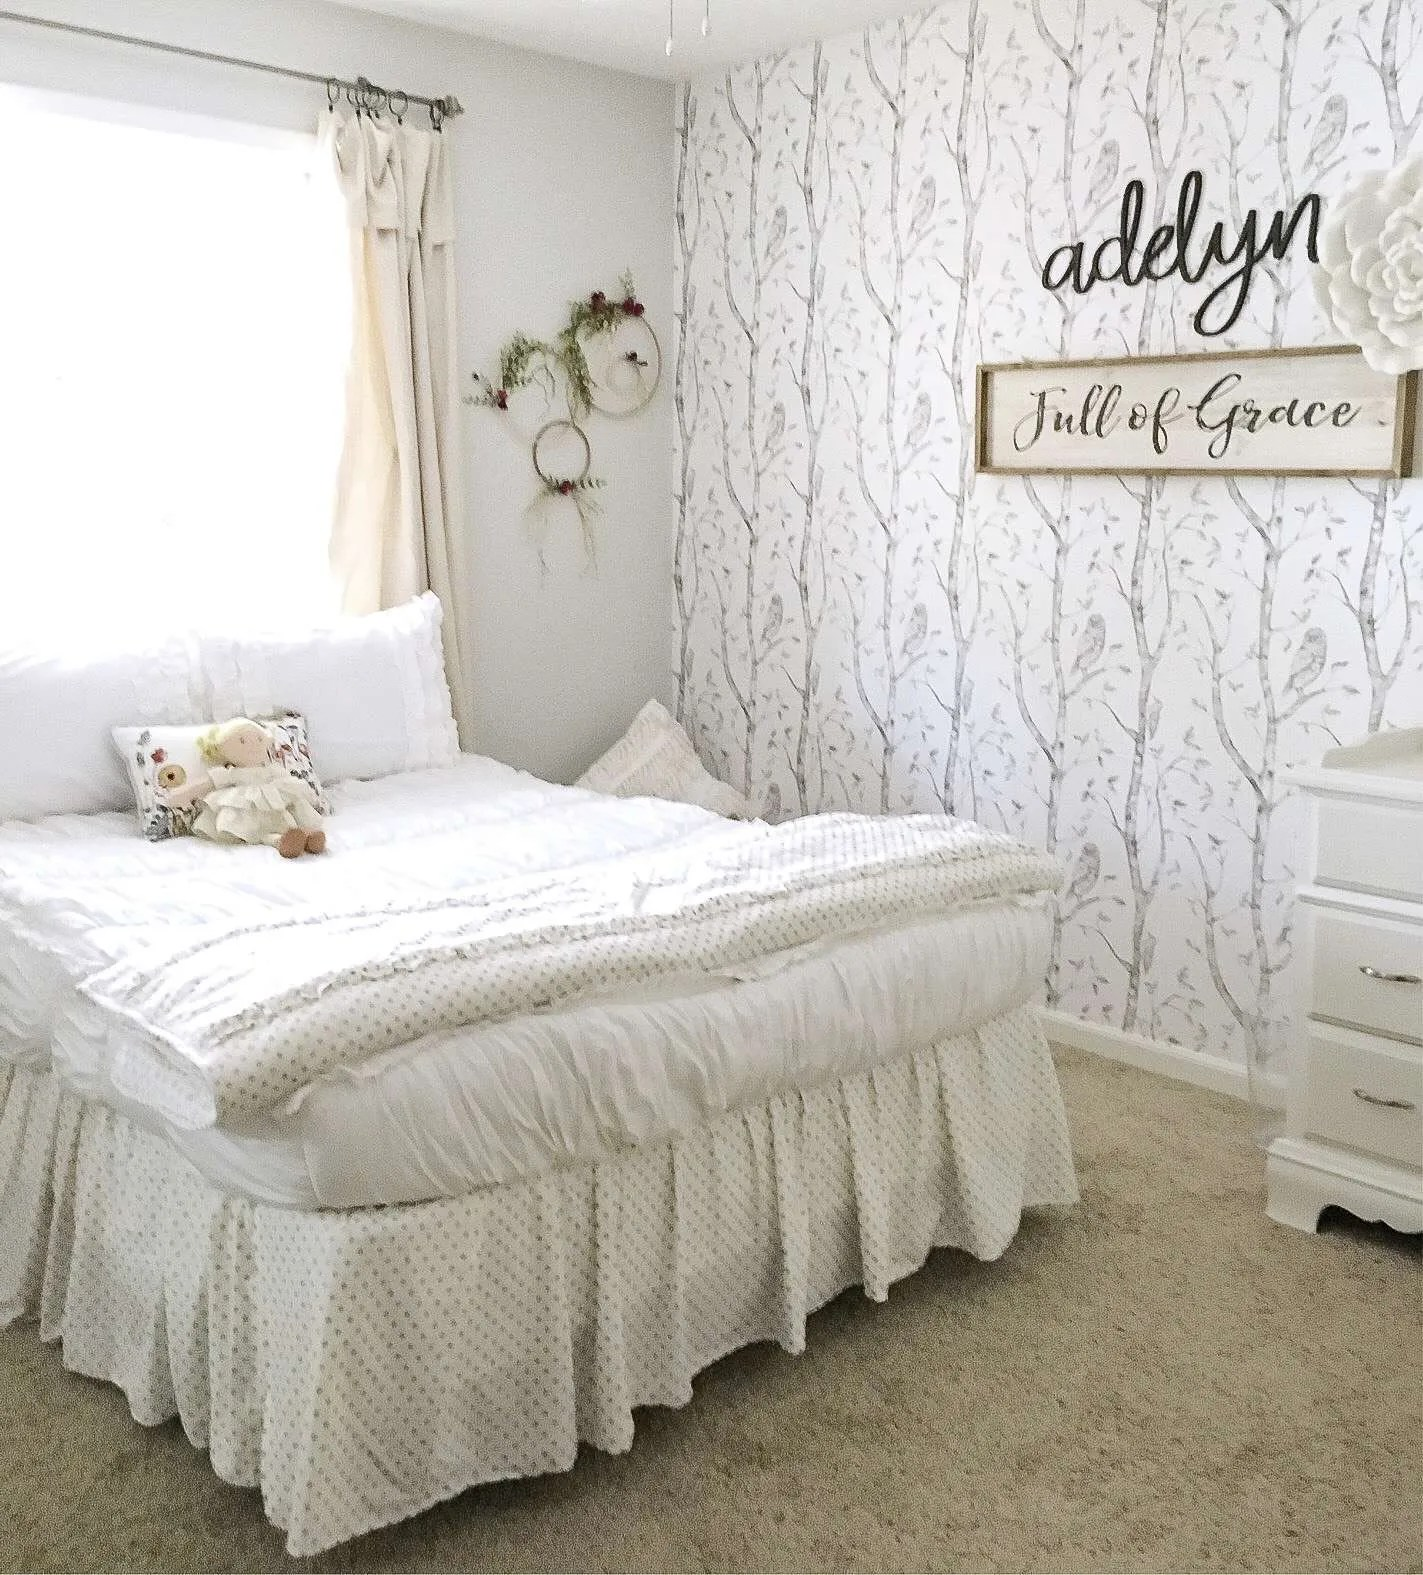 Girl's Bedroom Decor | A Simple and Sweet Makeover | Grace ... on Girls Room Decor  id=37461